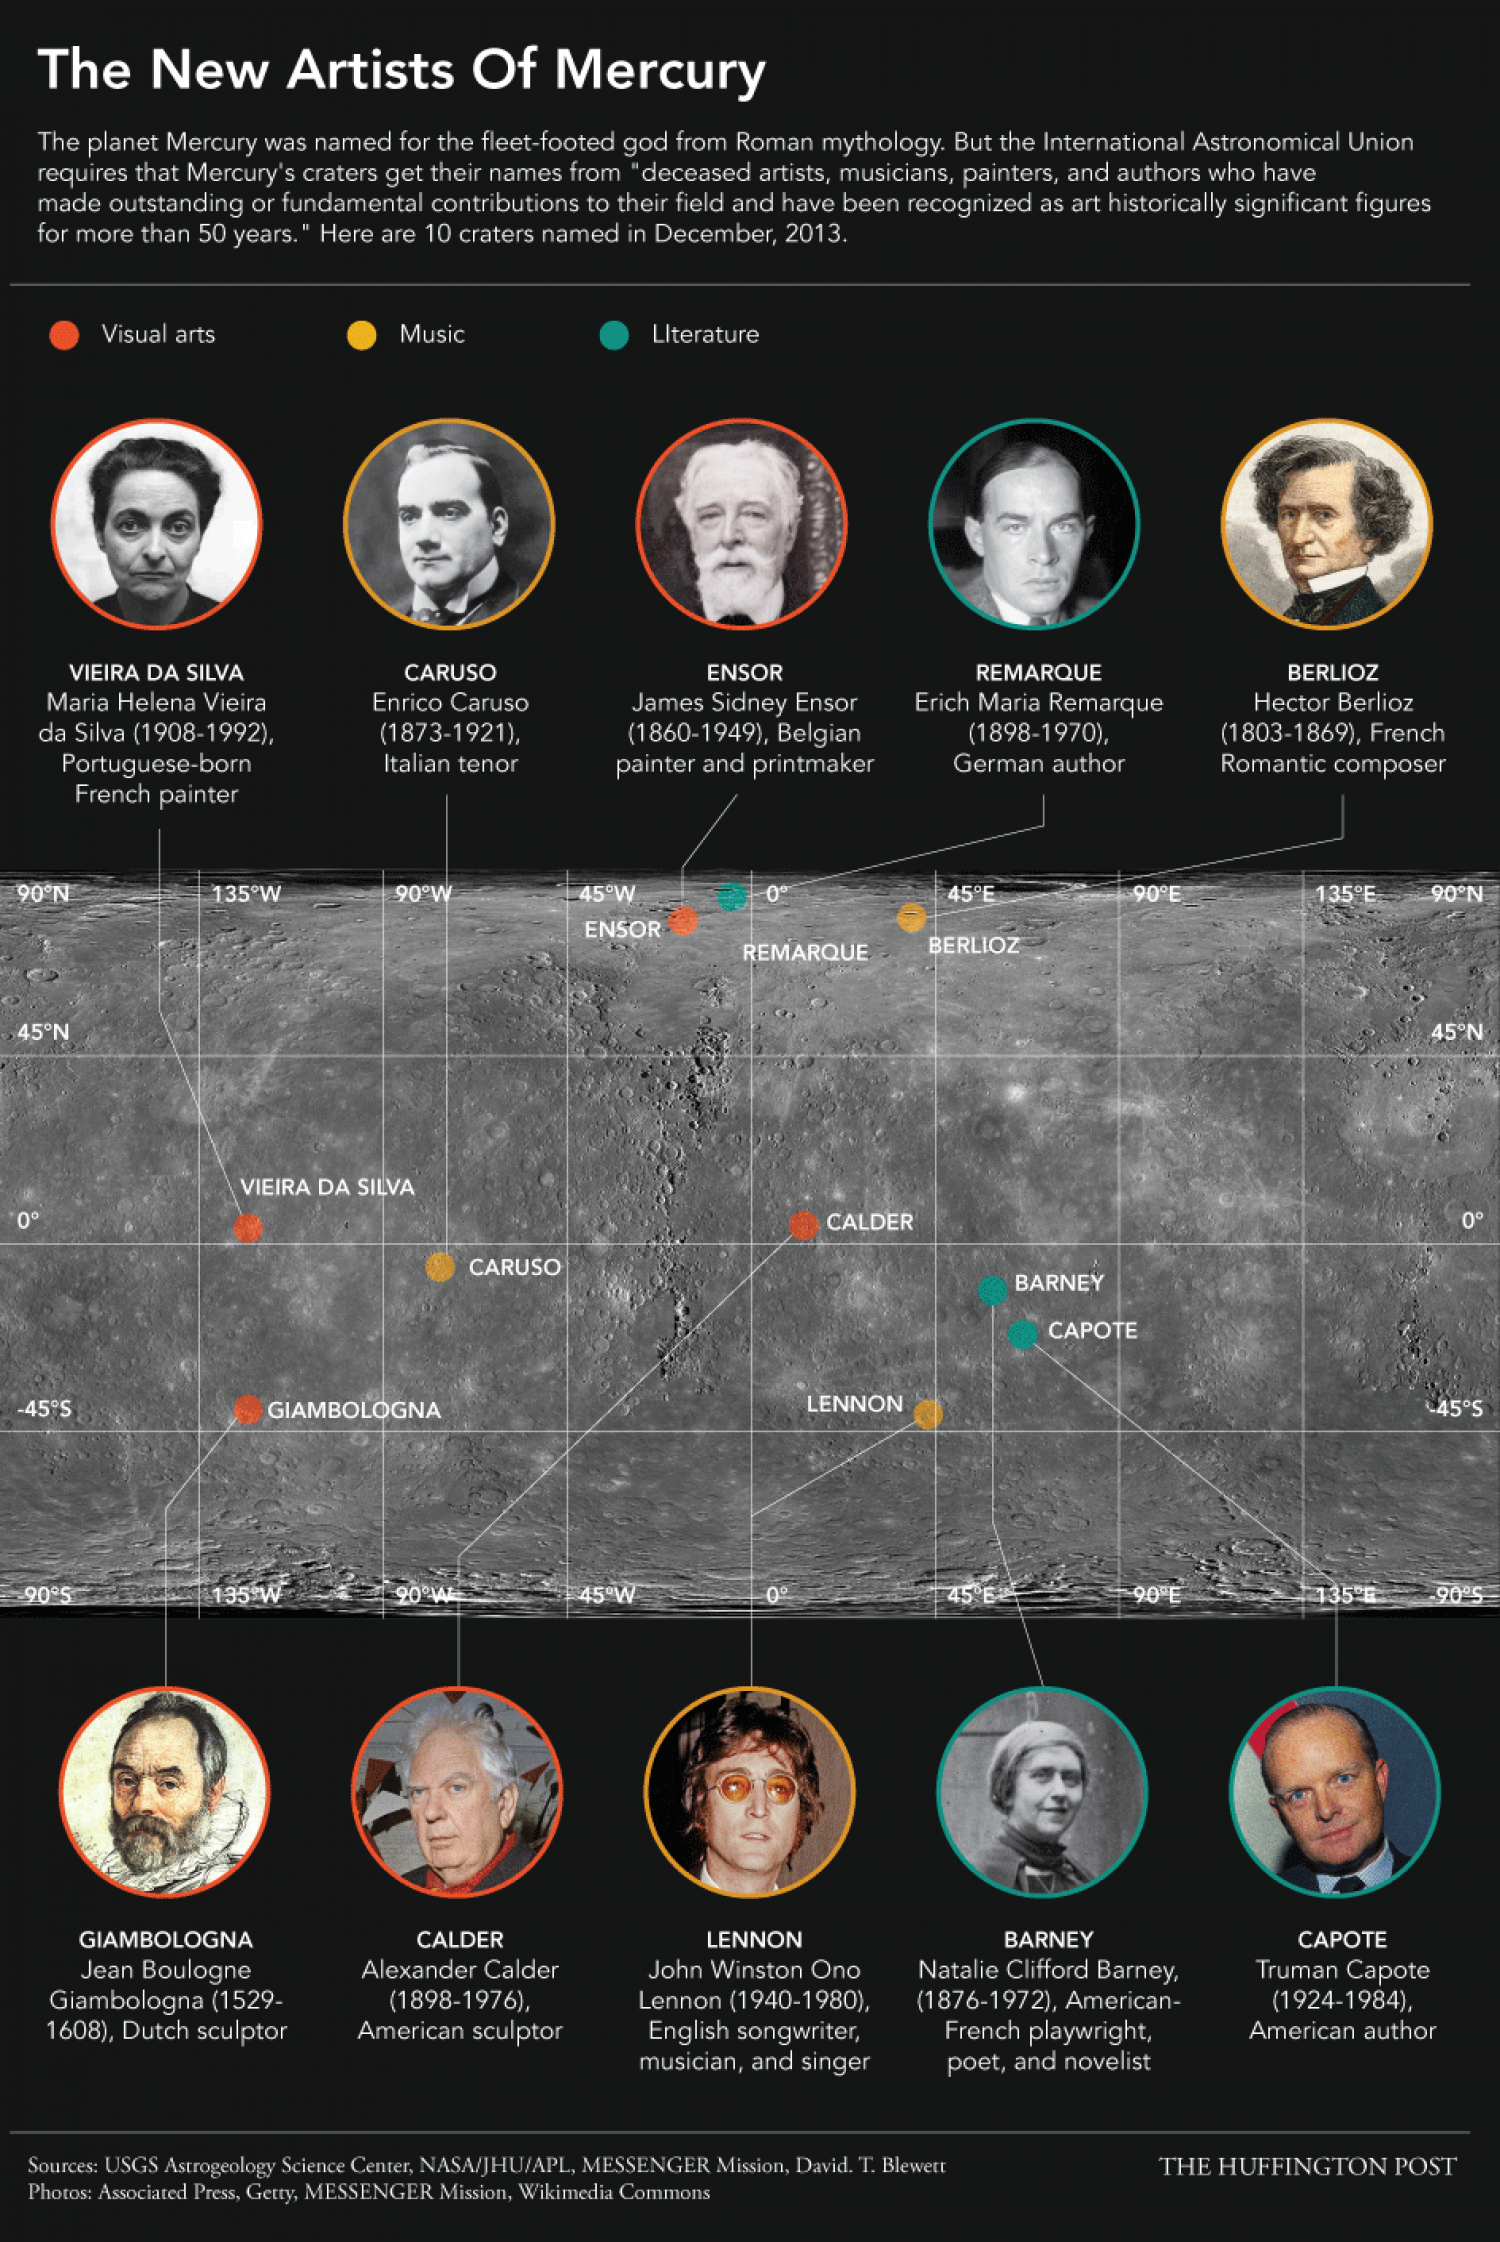 The New Artists of Mercury Infographic